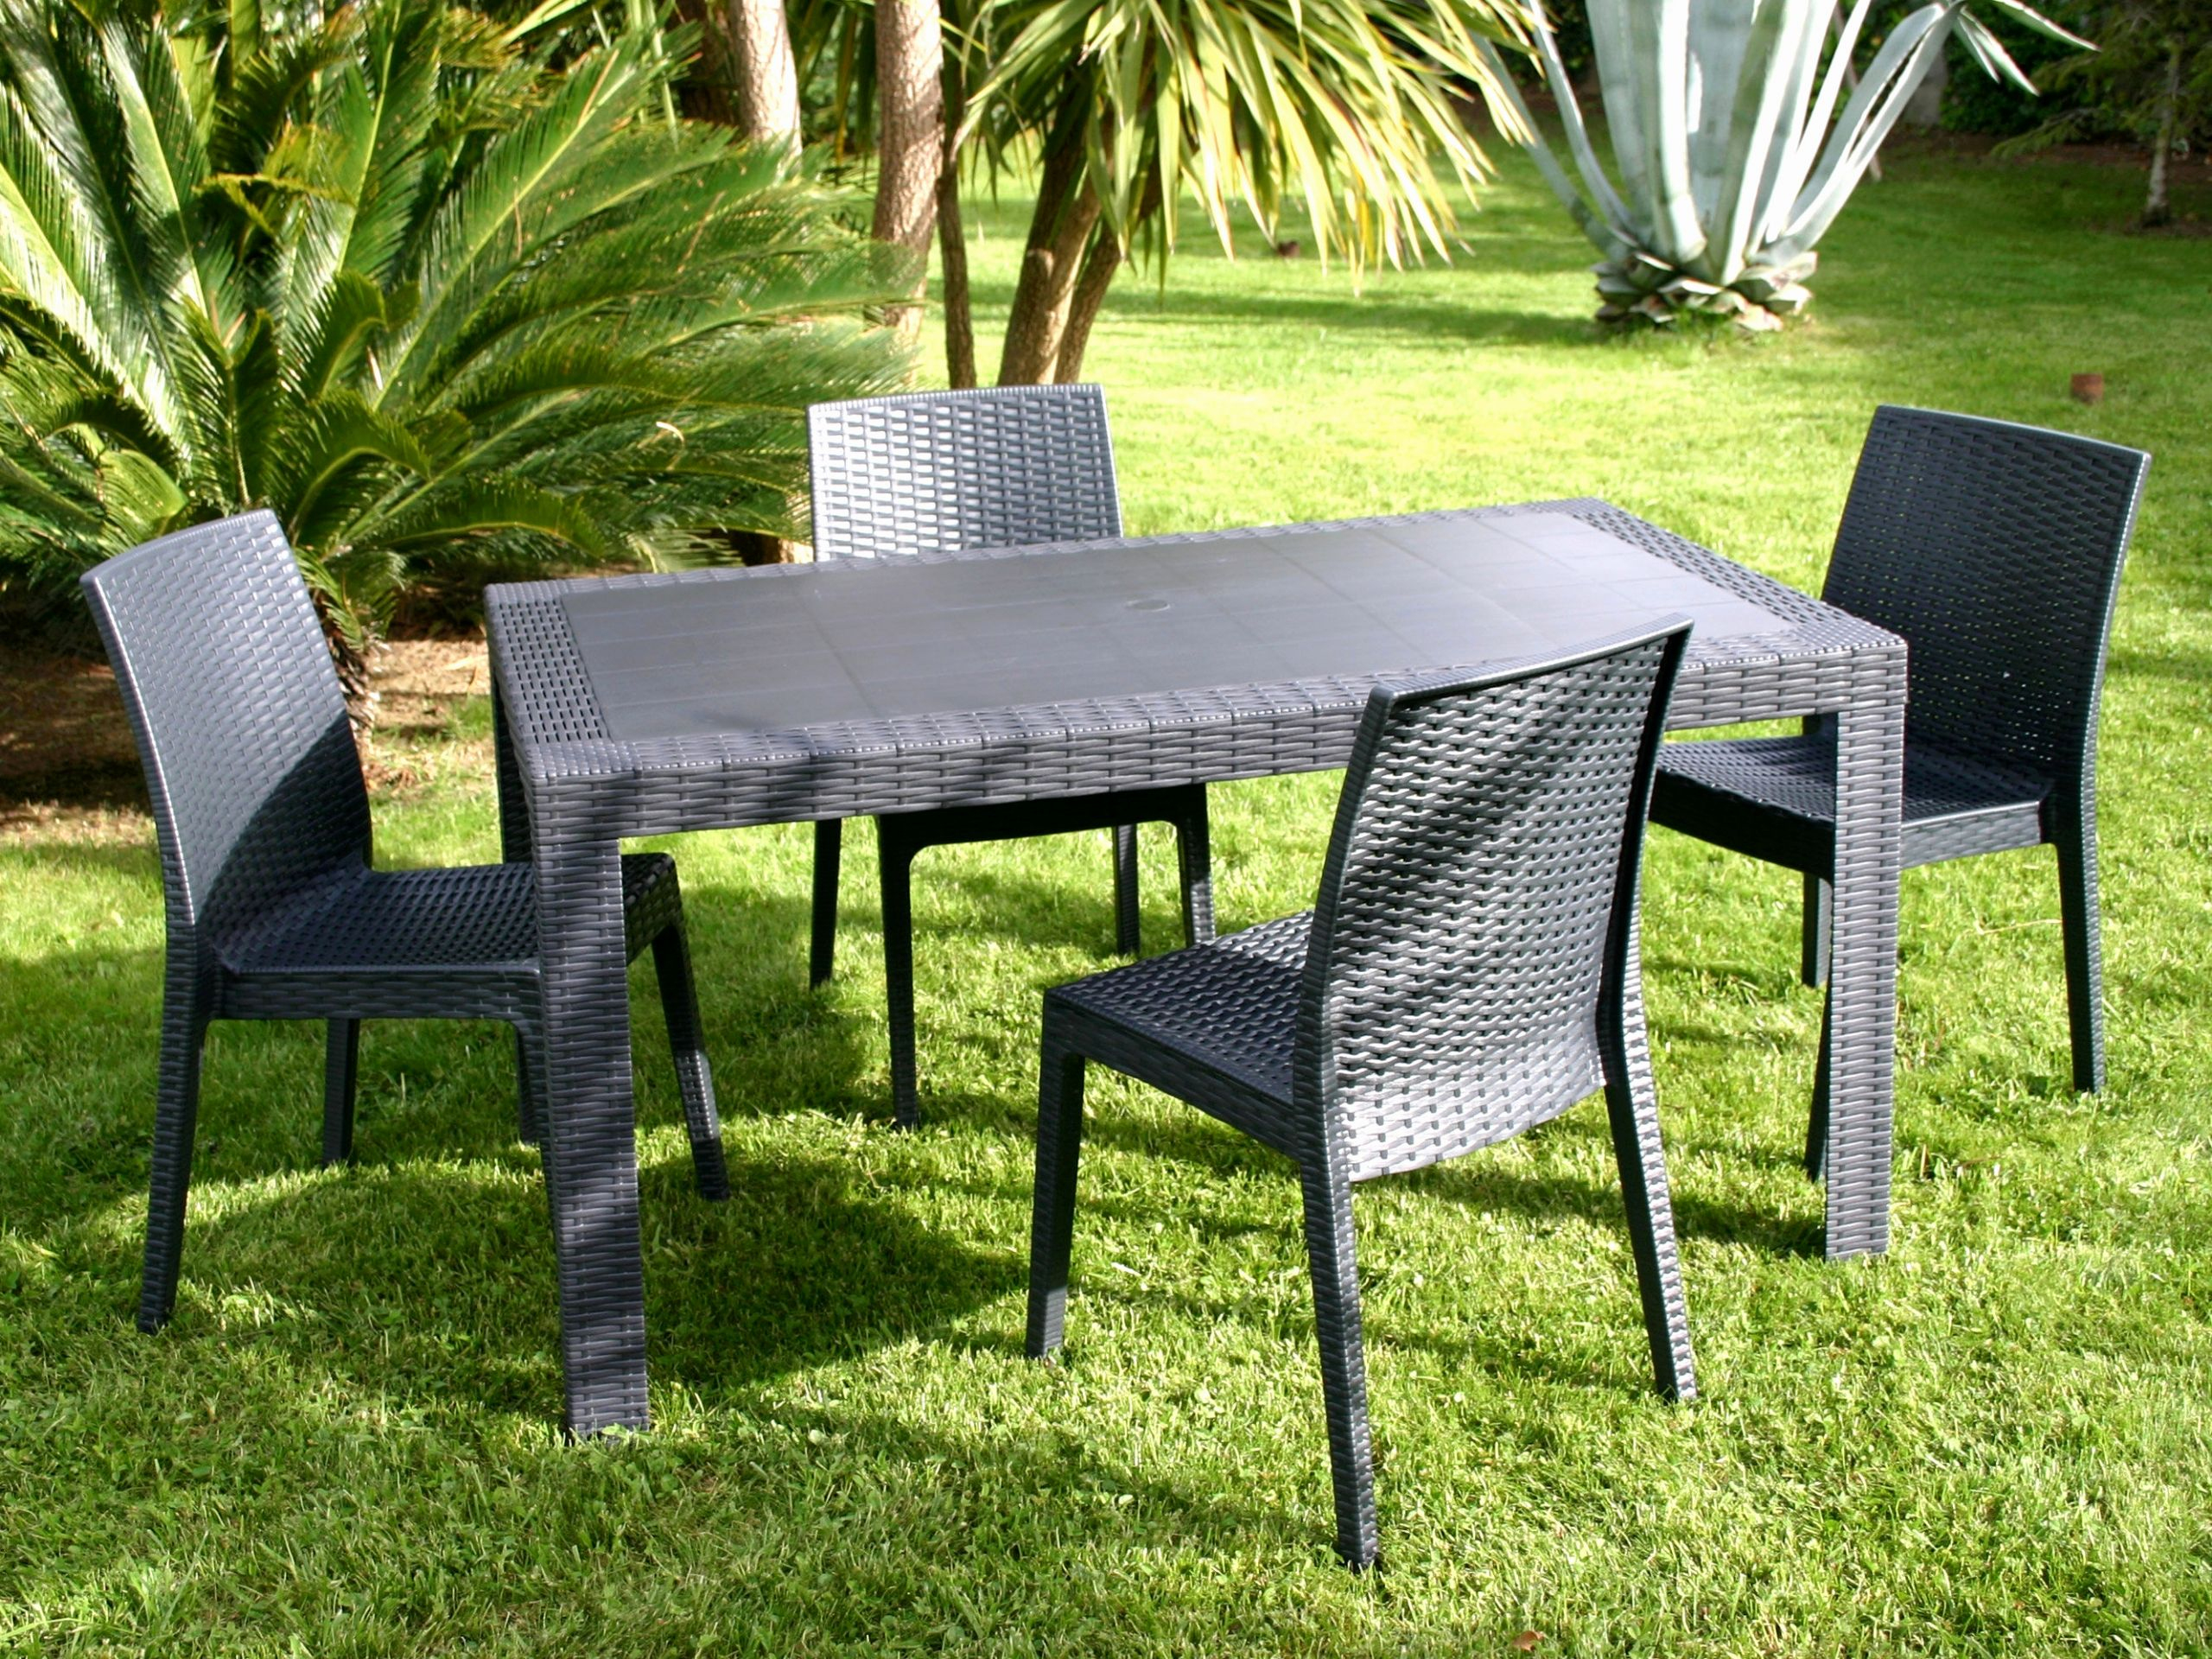 Table Exterieur Carrefour Best Of Catalogue Carrefour Abris ... concernant Table De Jardin En Bois Carrefour